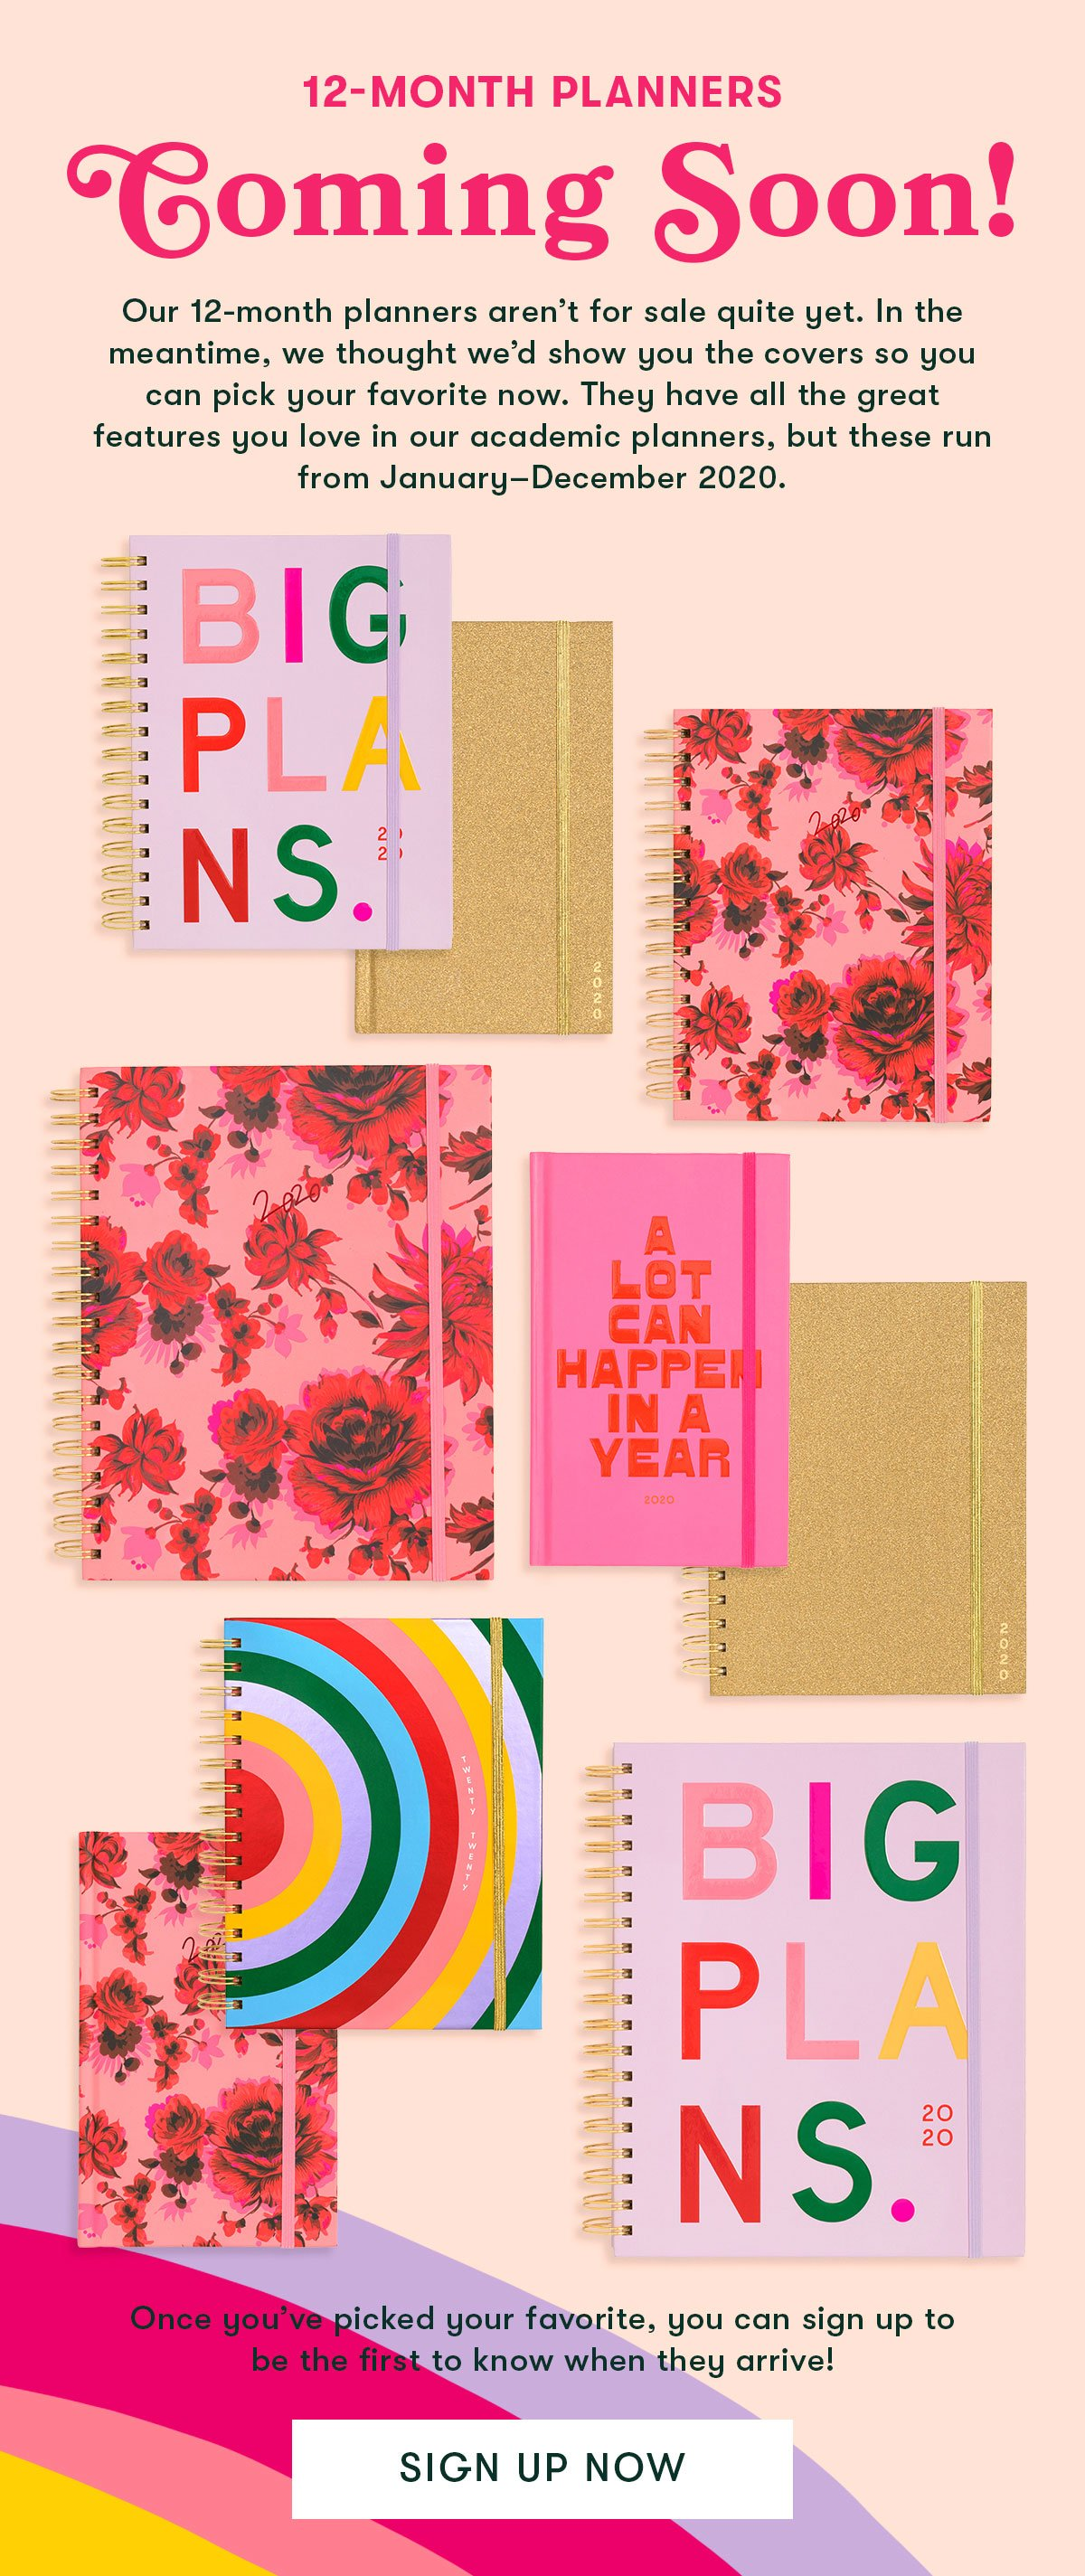 12-month planners coming soon!